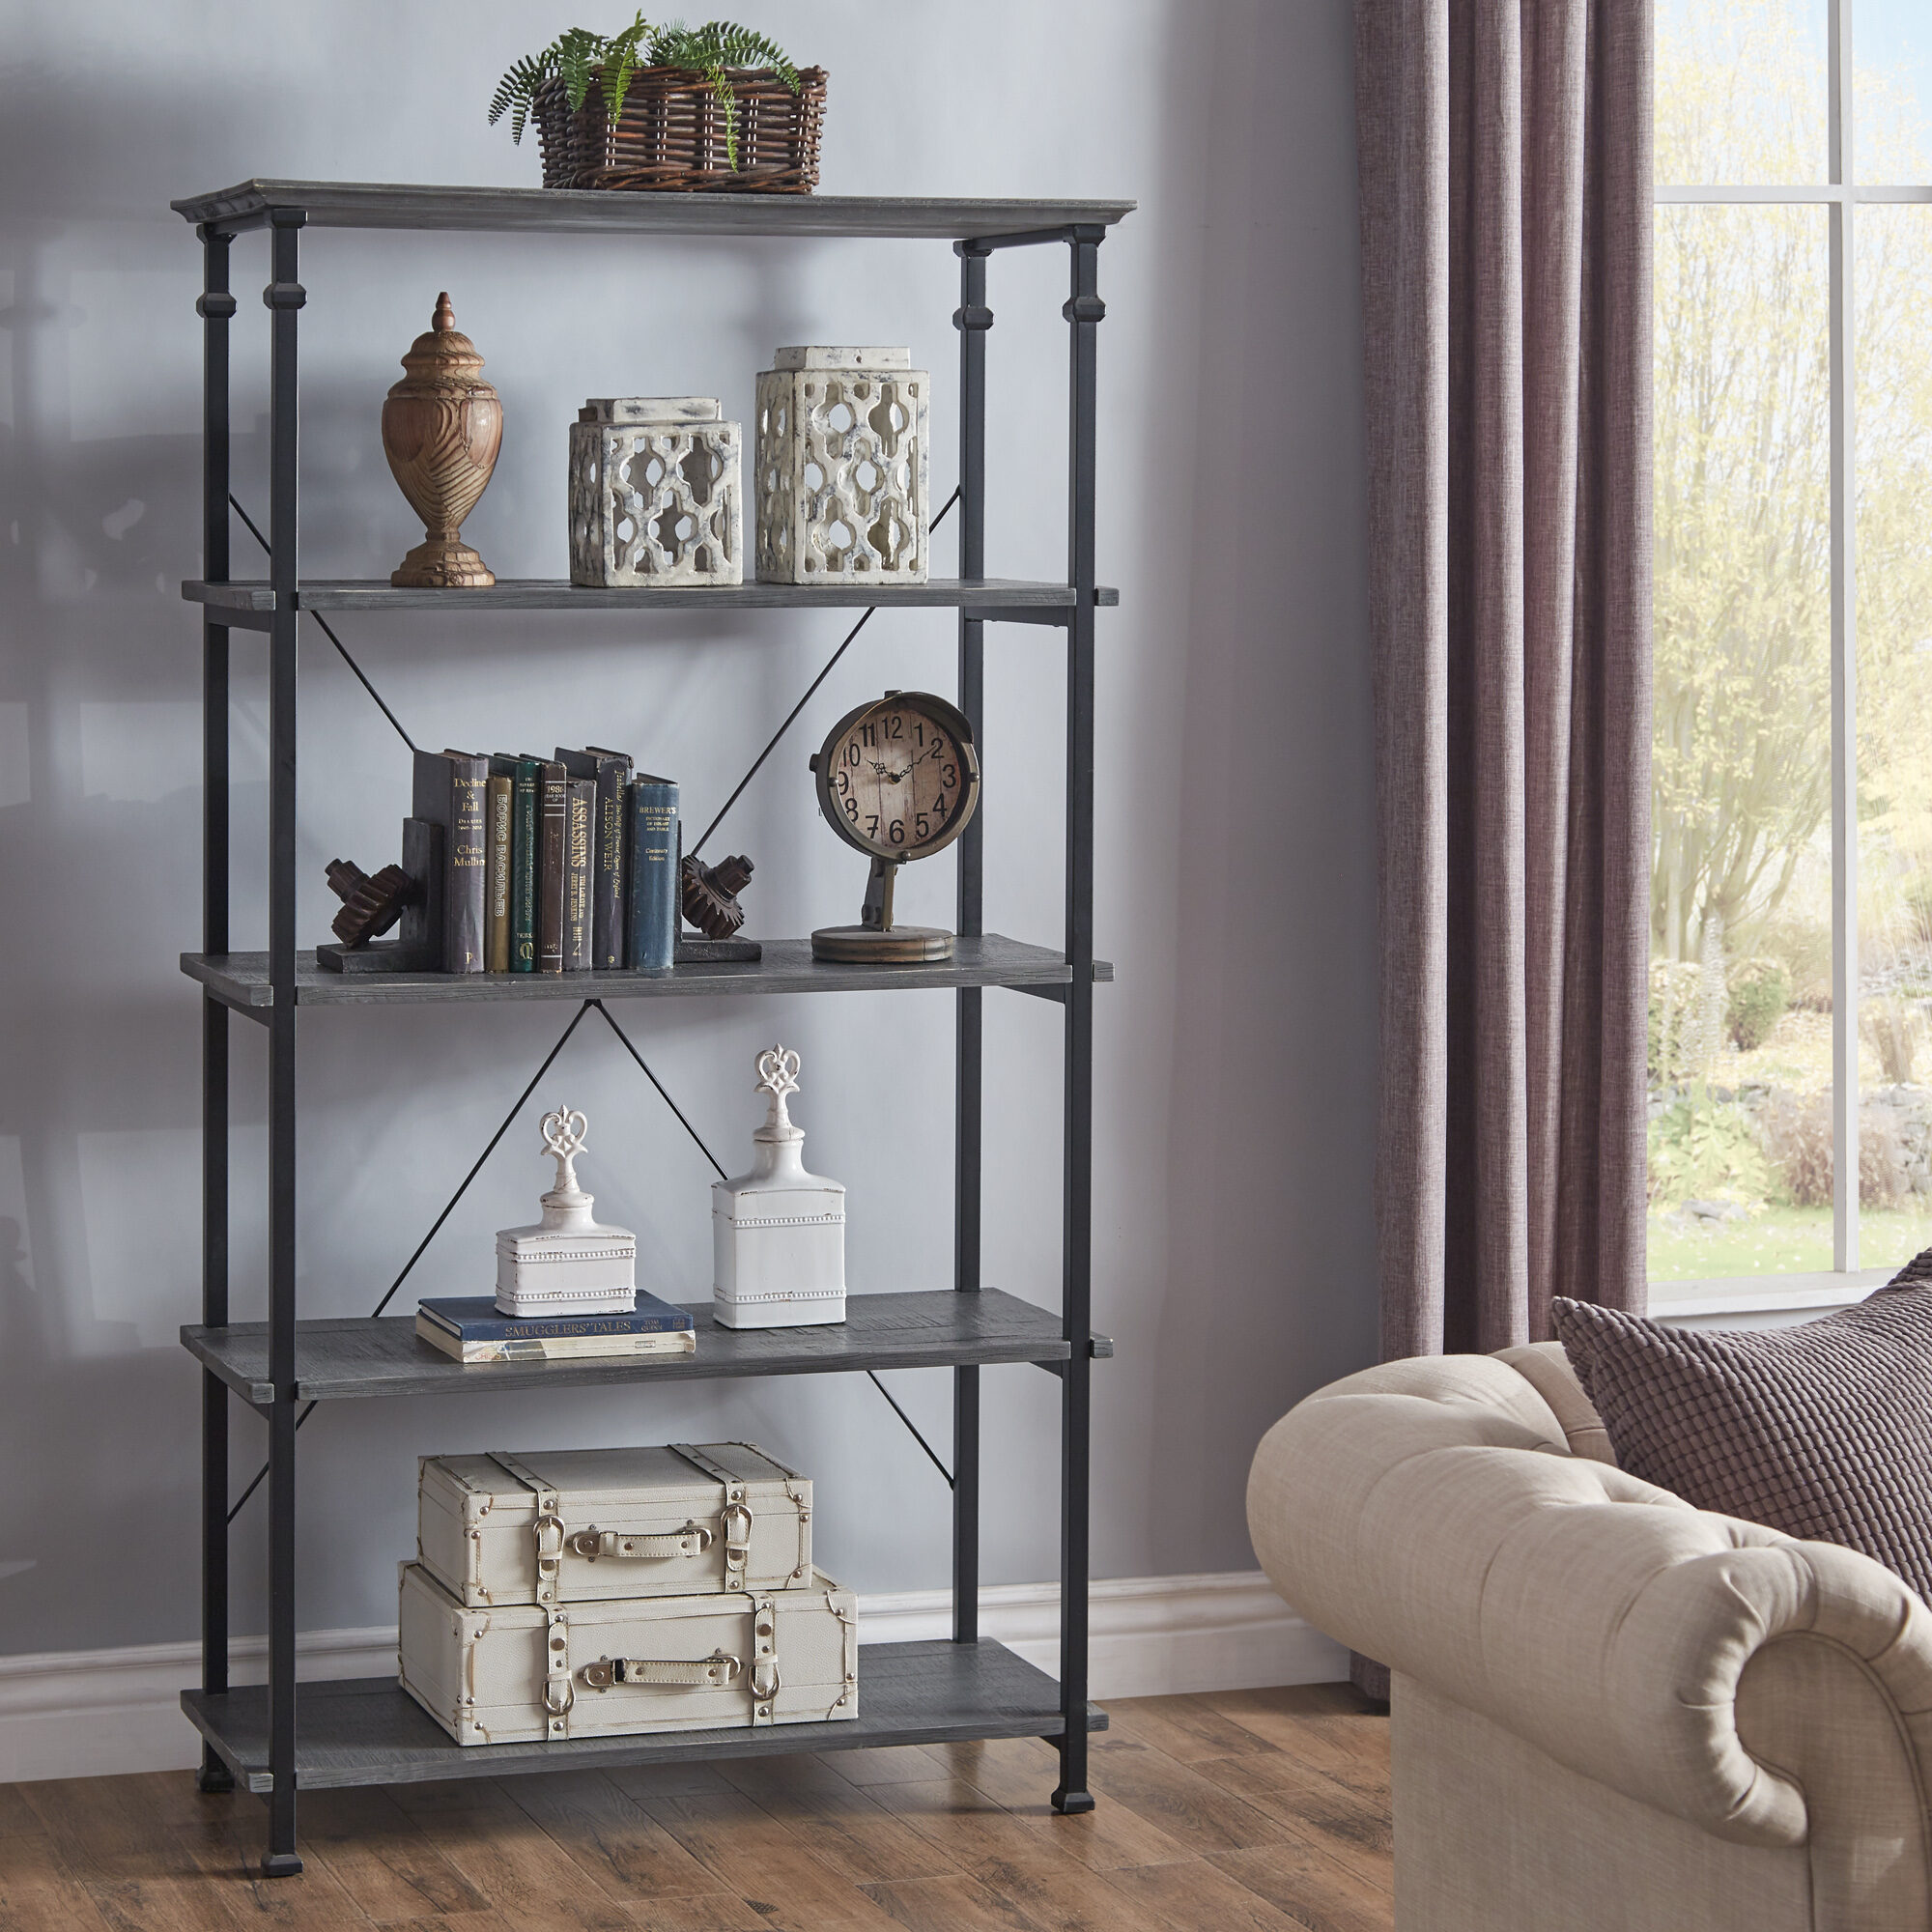 The third and final back-to-school tip for parents is about creating a space to display your child's accomplishments. This is our Myra Vintage Industrial Modern Rustic 40-inch Bookcase by iNSPIRE Q Classic. Four wide shelves are available and come in a grey or bistre brown finish.